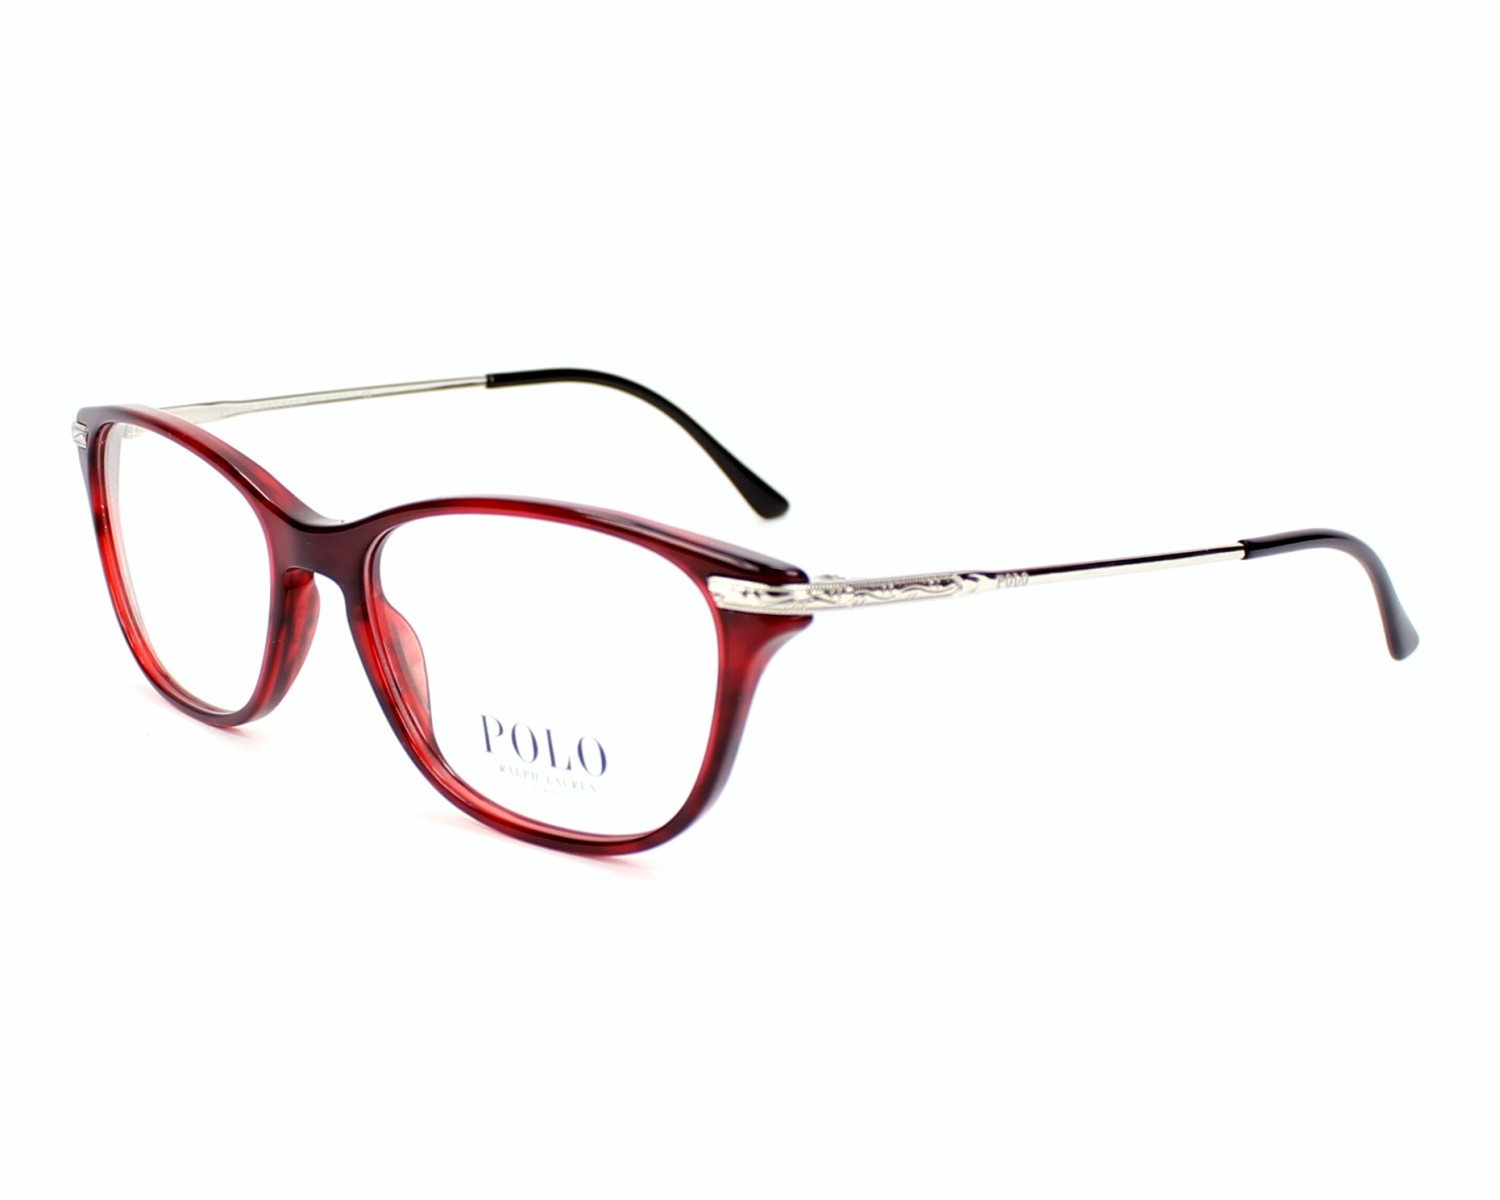 6de9e478d81 Polo Ralph Lauren Eyeglasses Bordeaux PH-2135 5533 - Visionet US